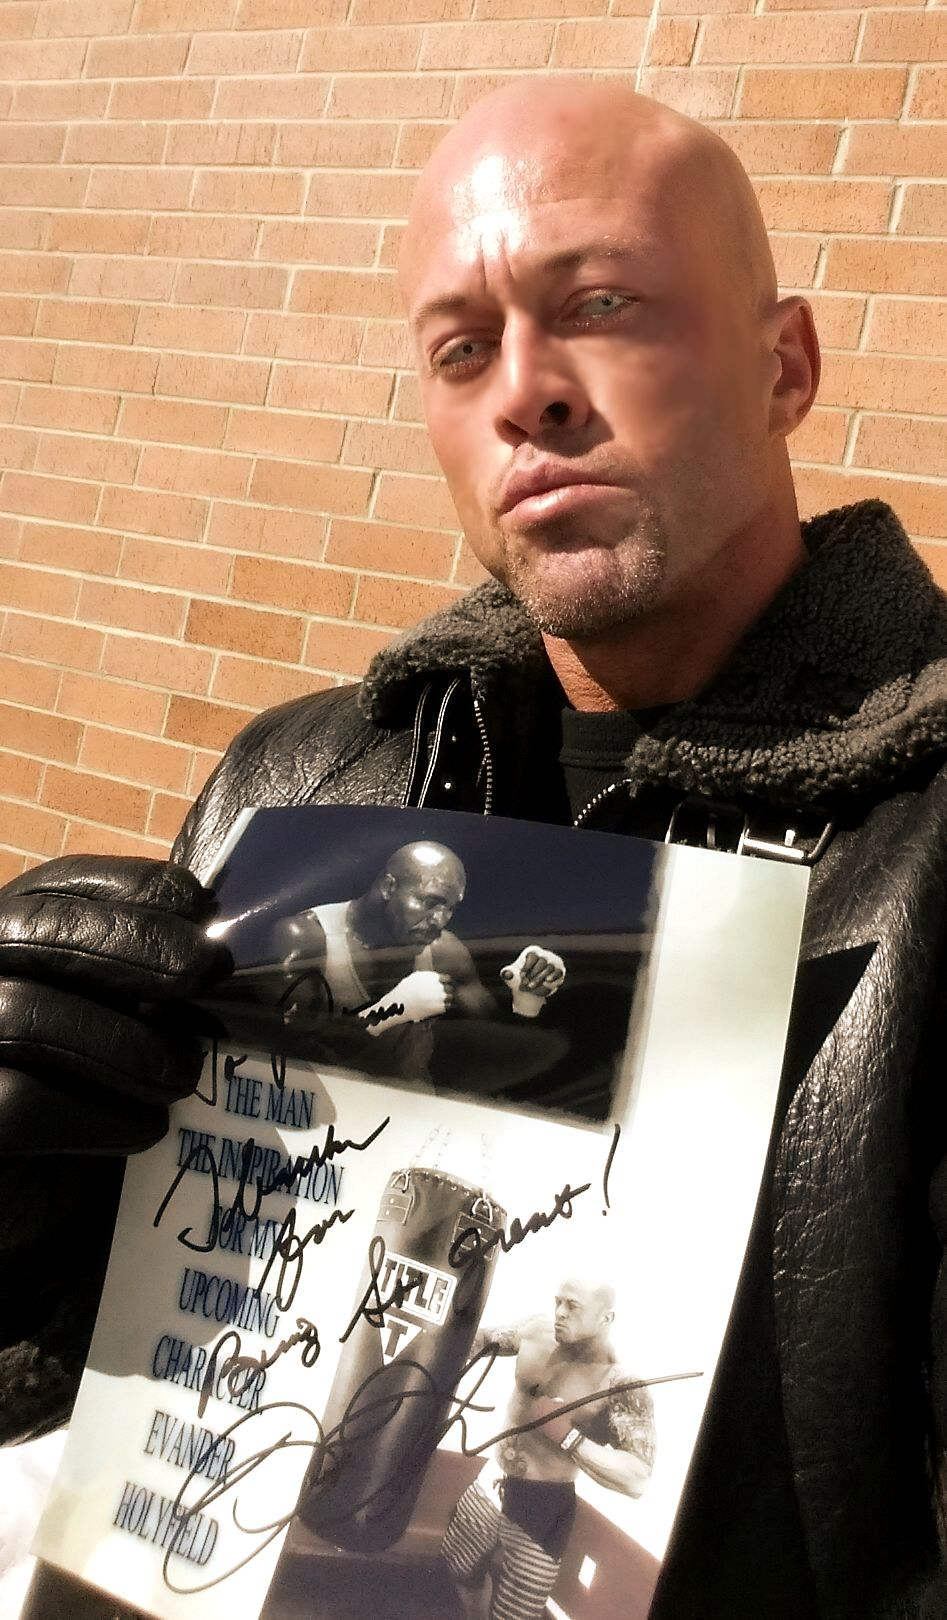 Boston Romance Physique Model Actor John Quinlan 2015 Pilot Film Character Inspiration Evander Holyfield Poster by Patricia Statham Autograph Signed 8x10. #JohnQuinlan